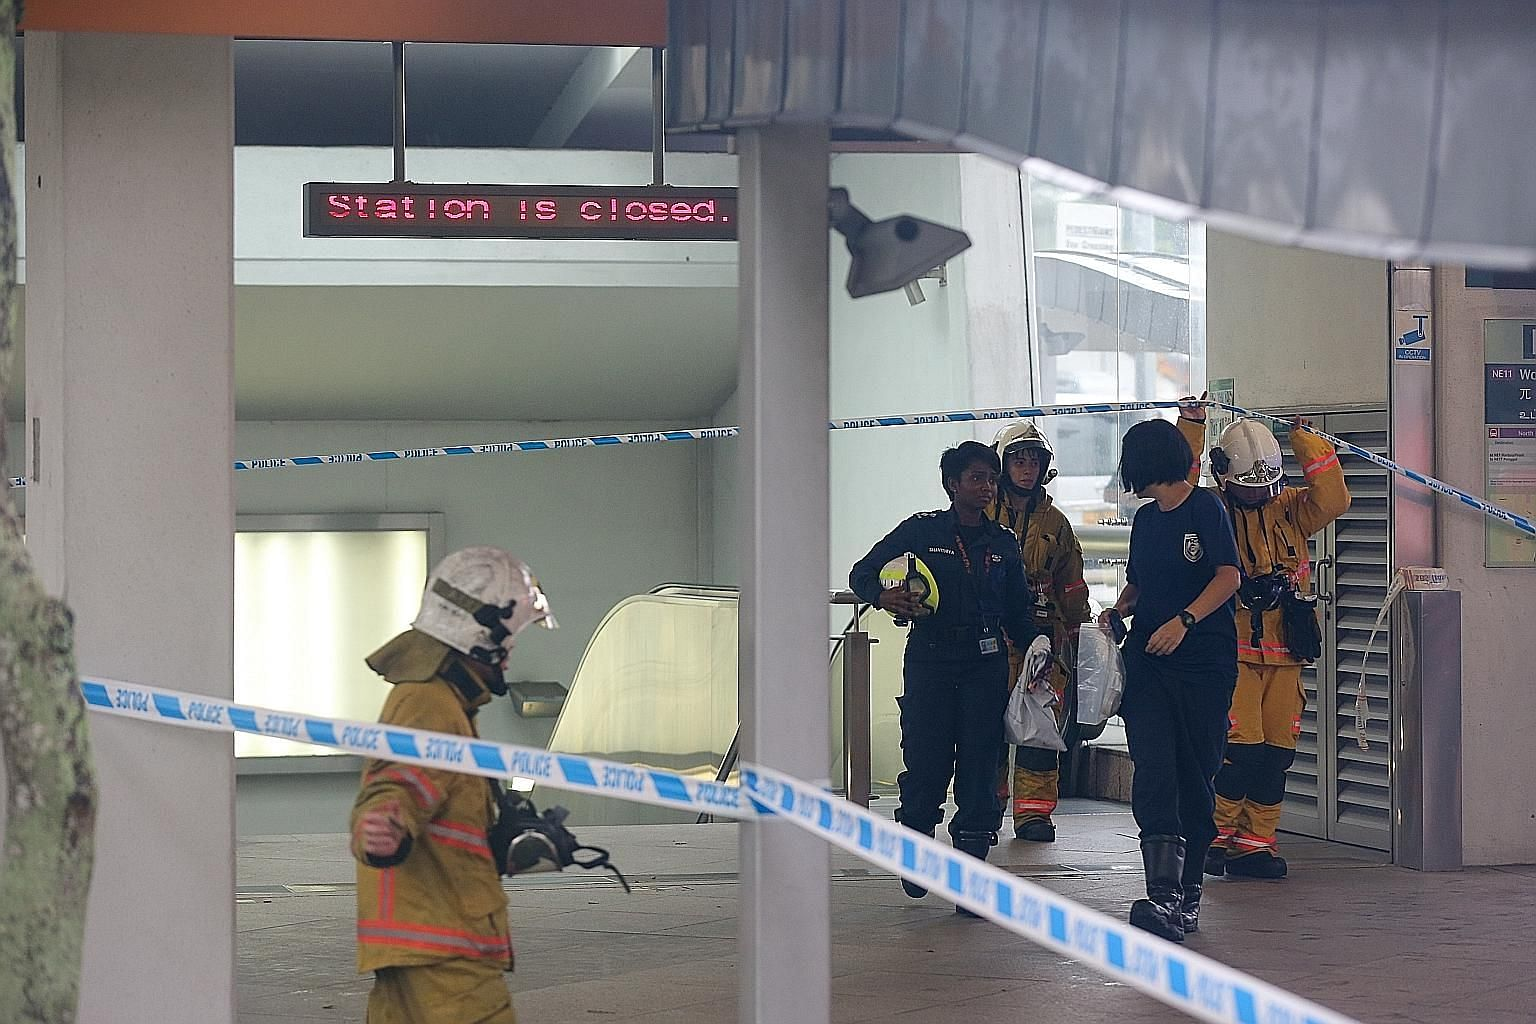 Singapore Civil Defence Force officers at Woodleigh MRT station yesterday, where the substance that later turned out to be flour was found at several spots.